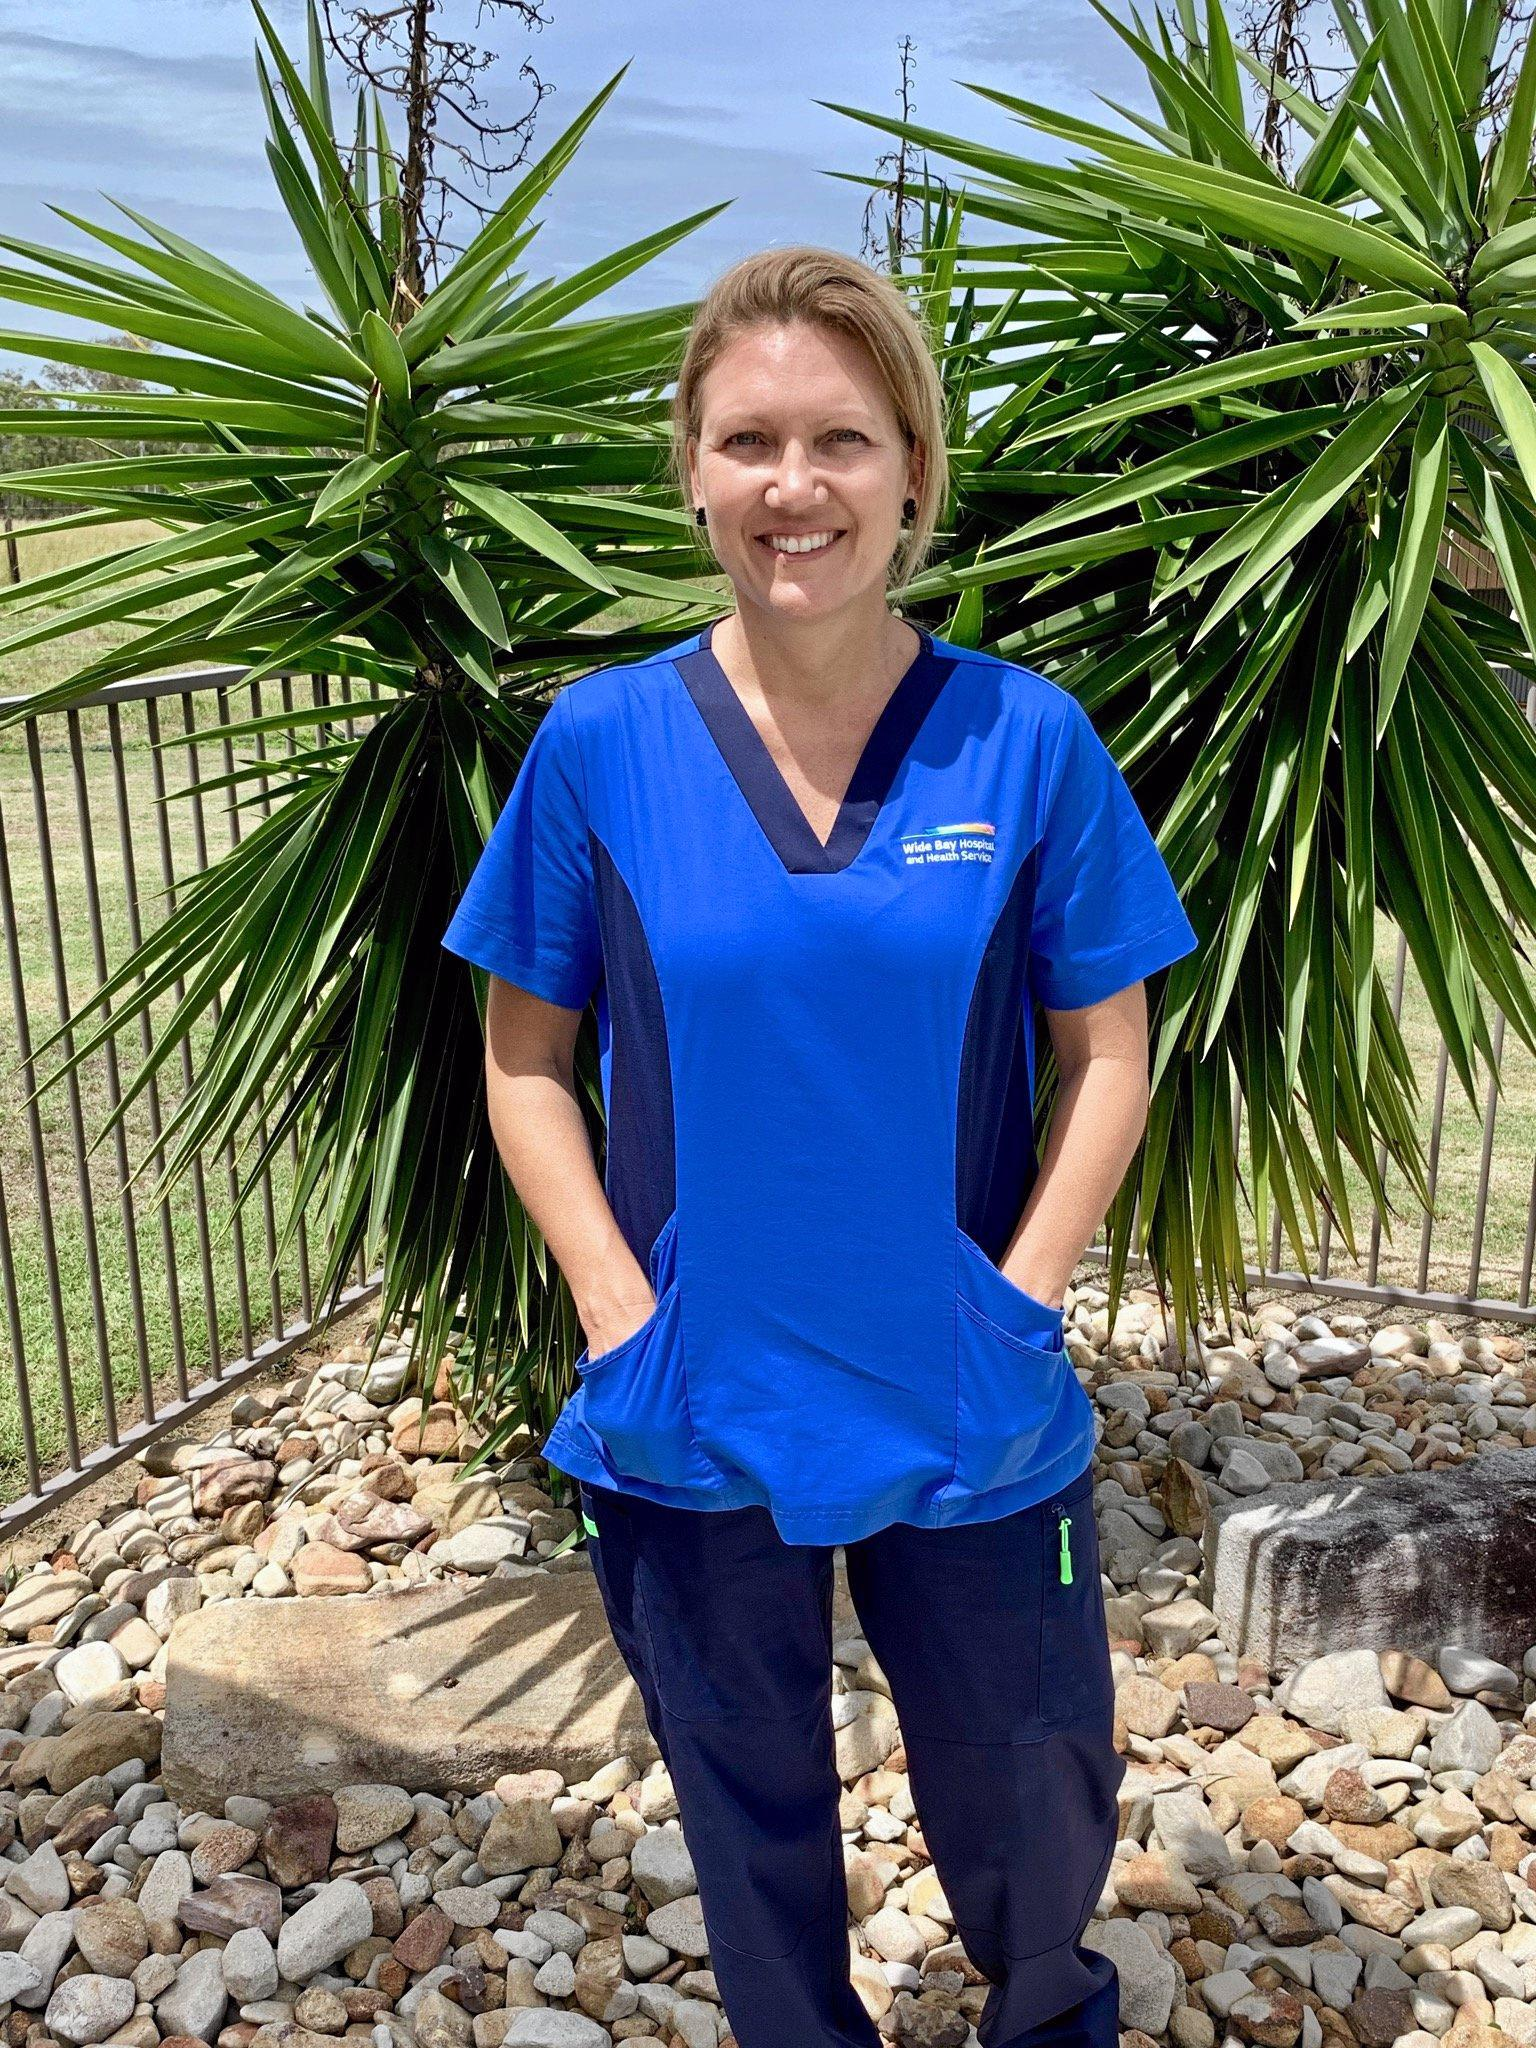 Amanda Christensen works at Hervey Bay Hospital.